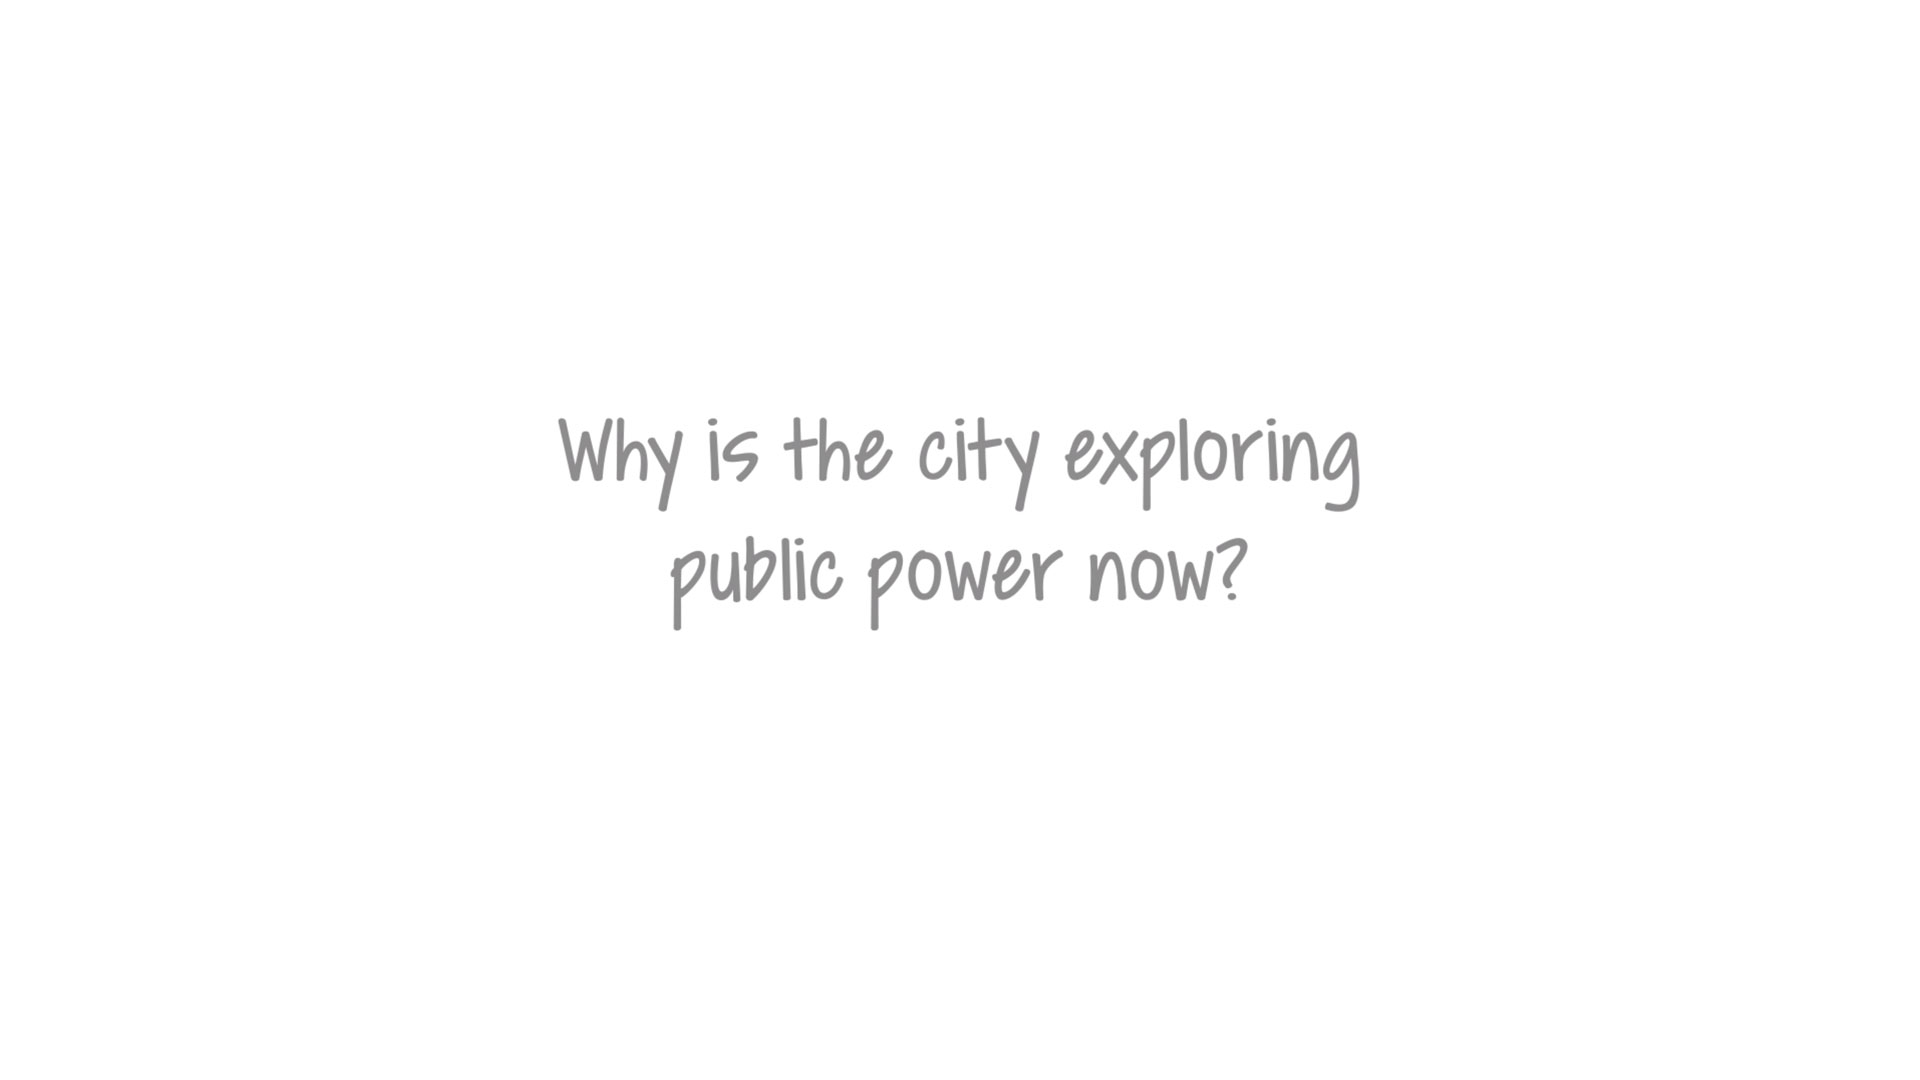 Why is the city exploring public power now